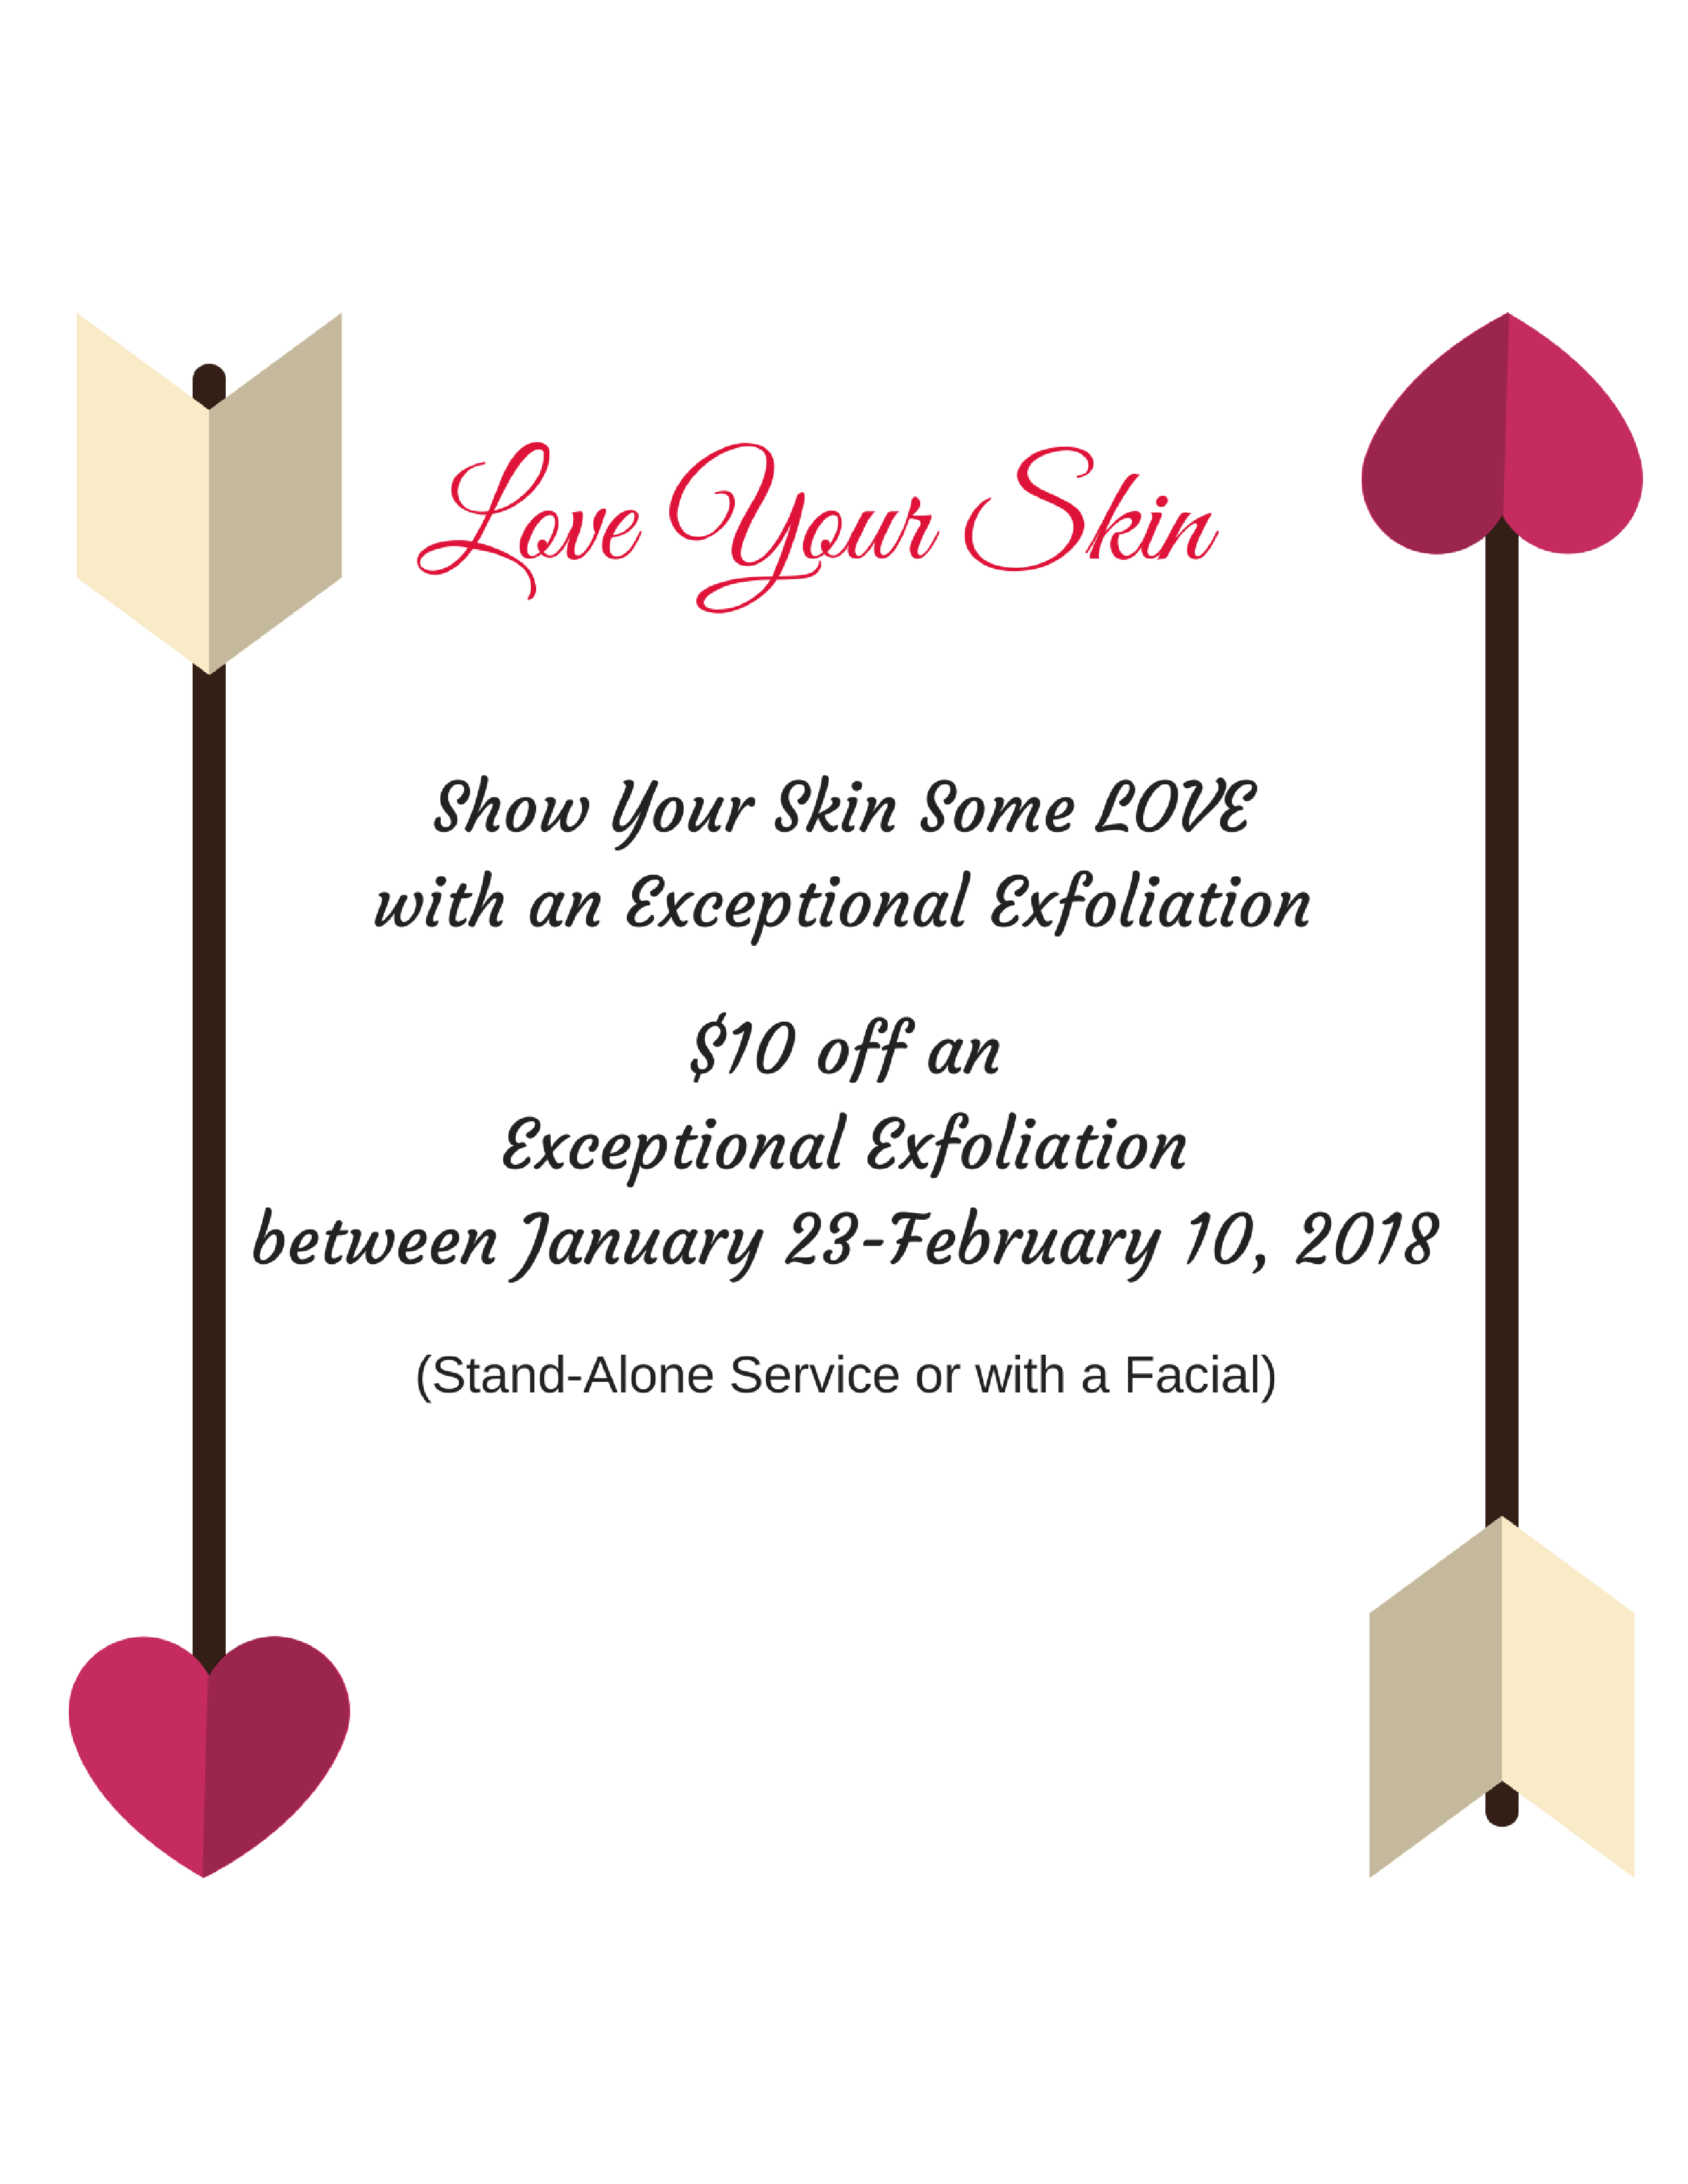 LOVE Your Skin!